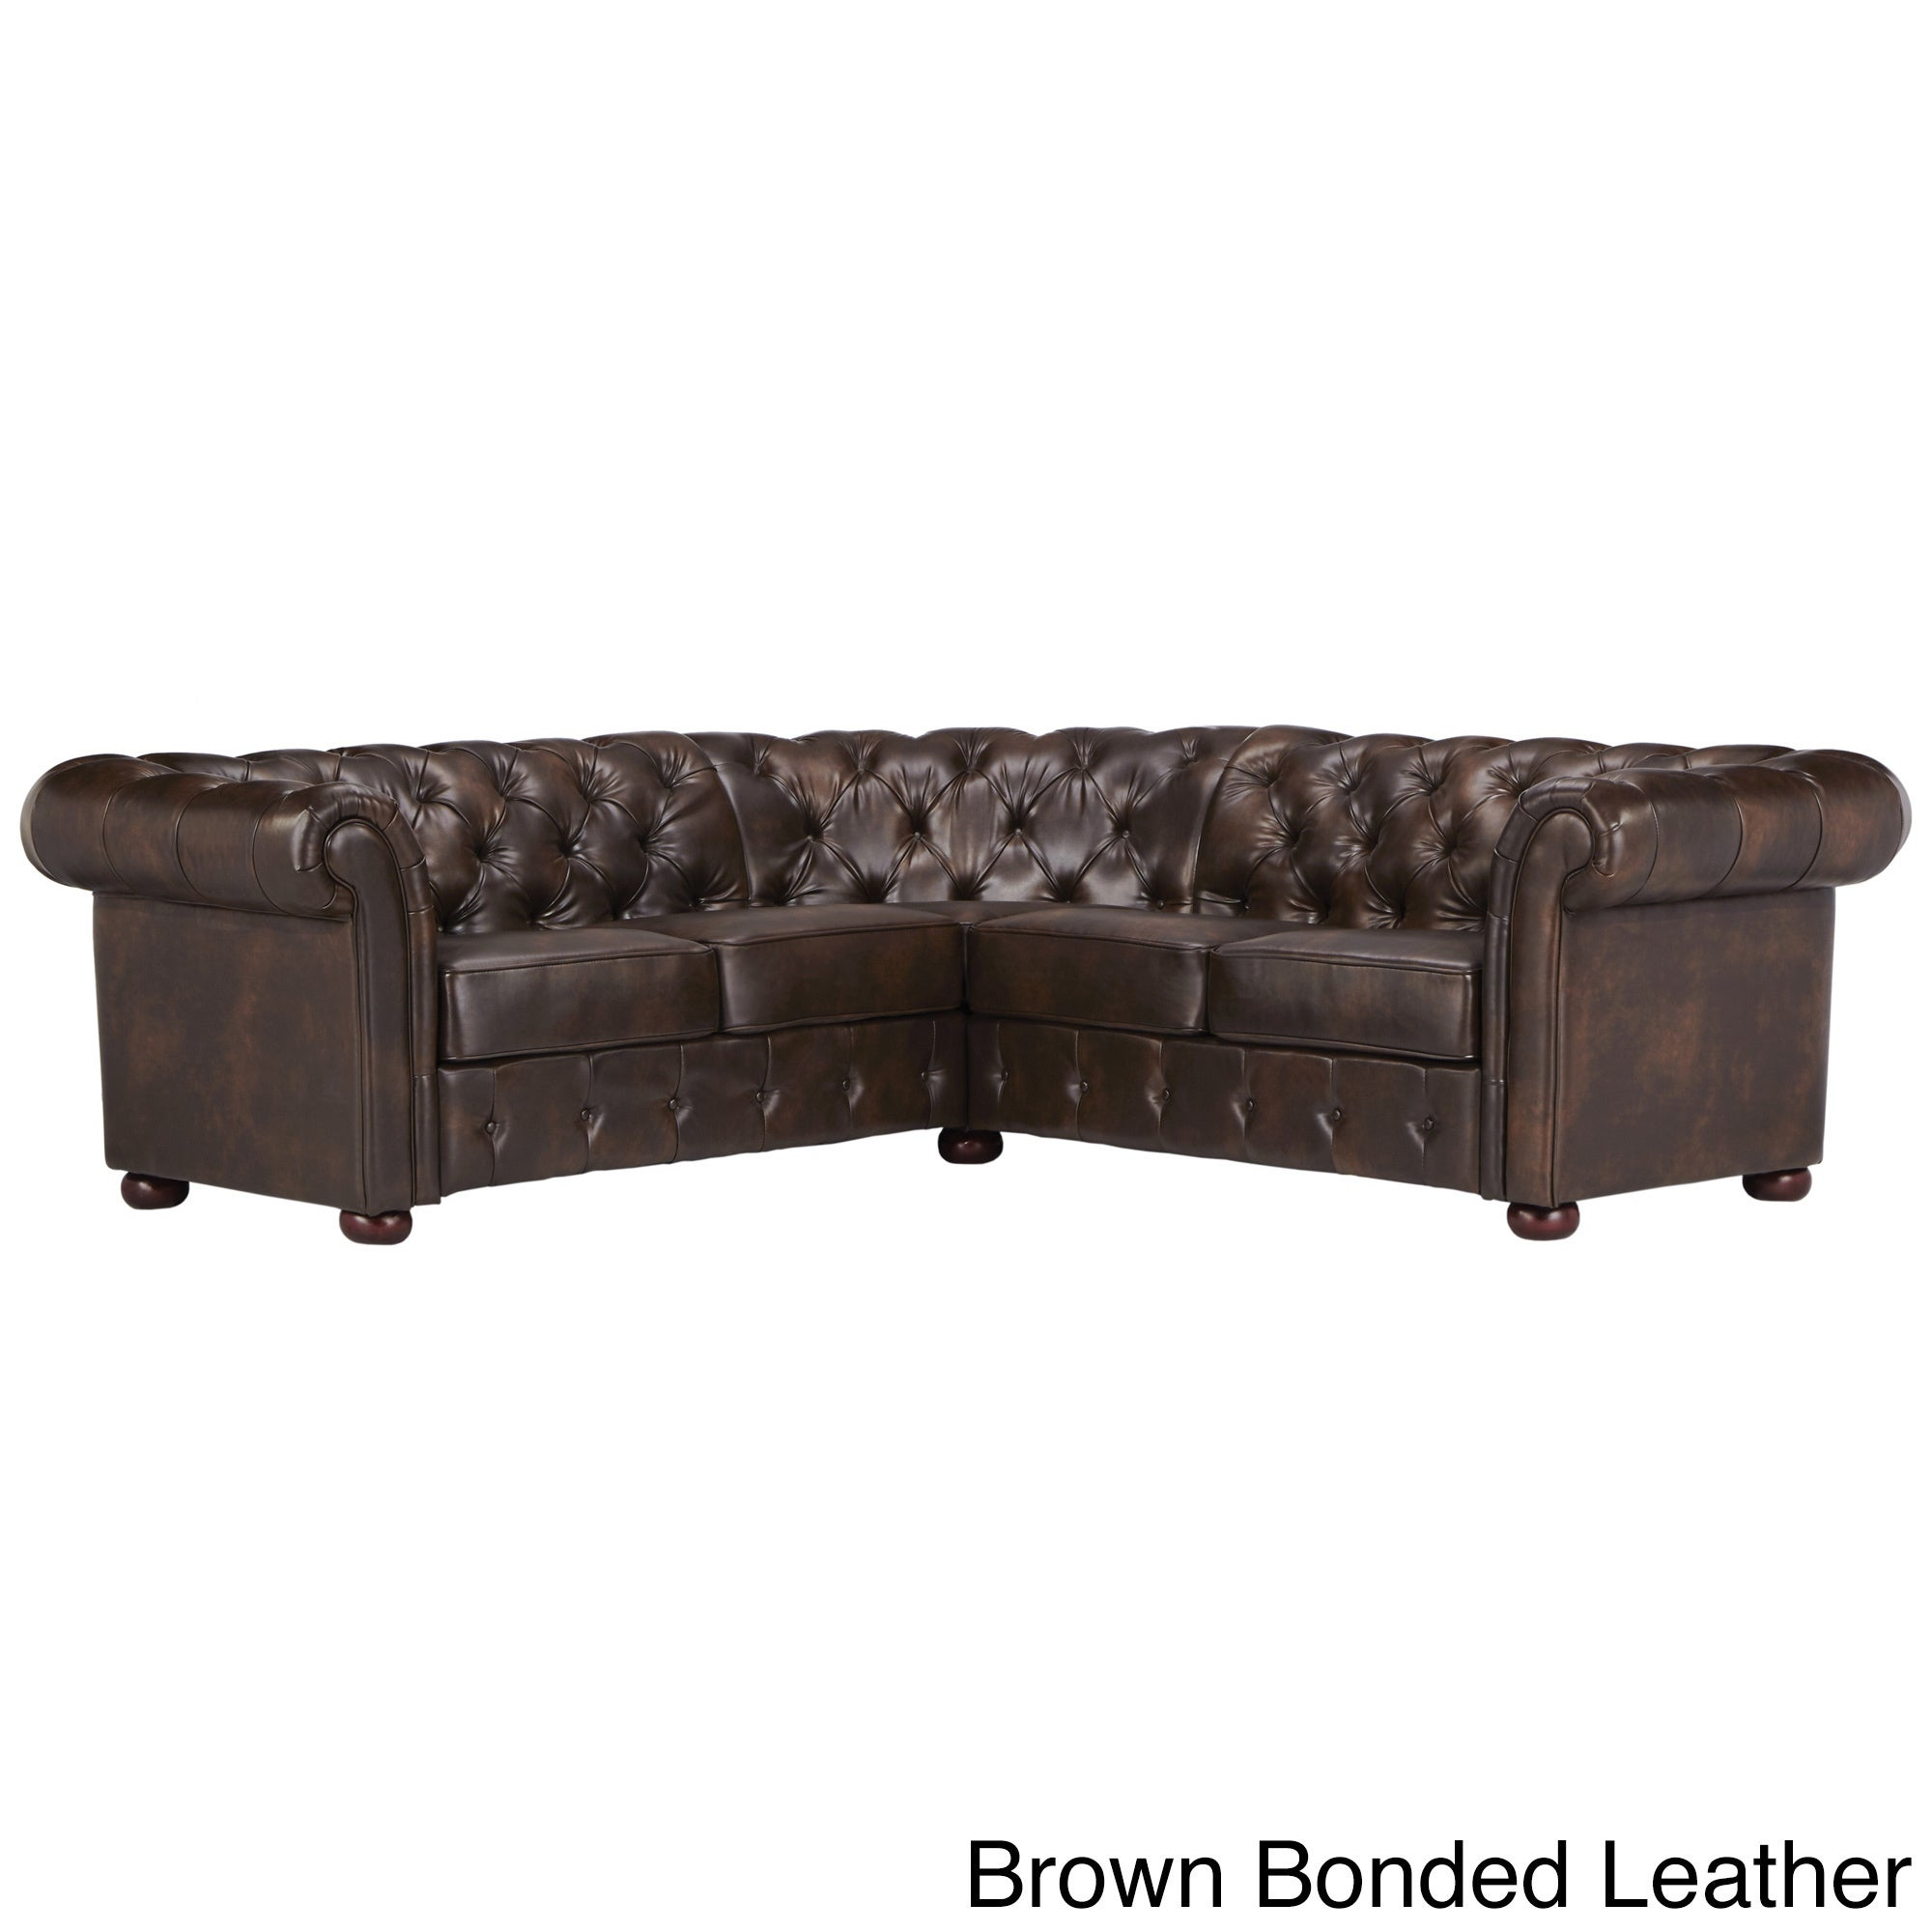 Knightsbridge Tufted Scroll Arm Chesterfield 5-seat L-Shaped Sectional by  iNSPIRE Q Artisan - Free Shipping Today - Overstock.com - 17755613